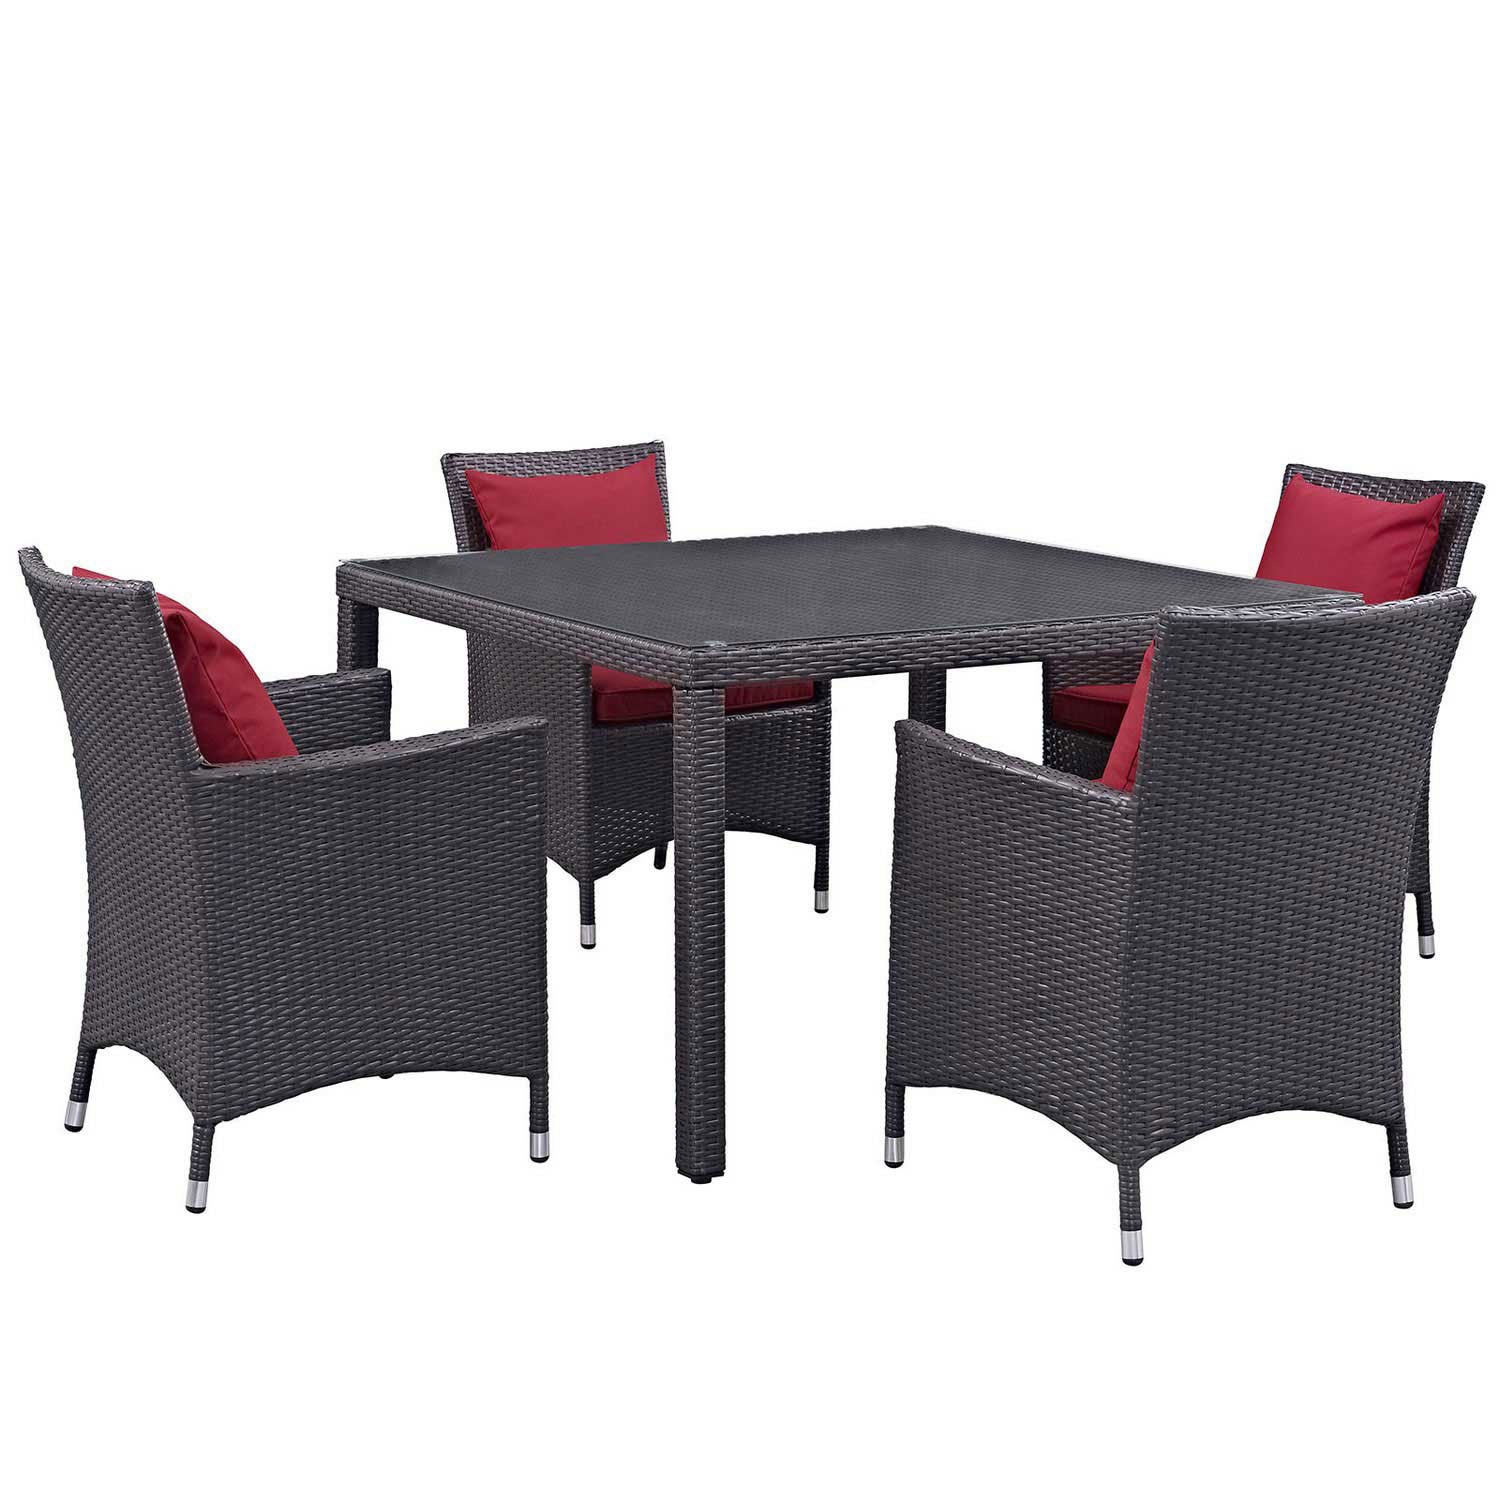 Modway Convene 5 Piece Outdoor Patio Dining Set - Espresso Red